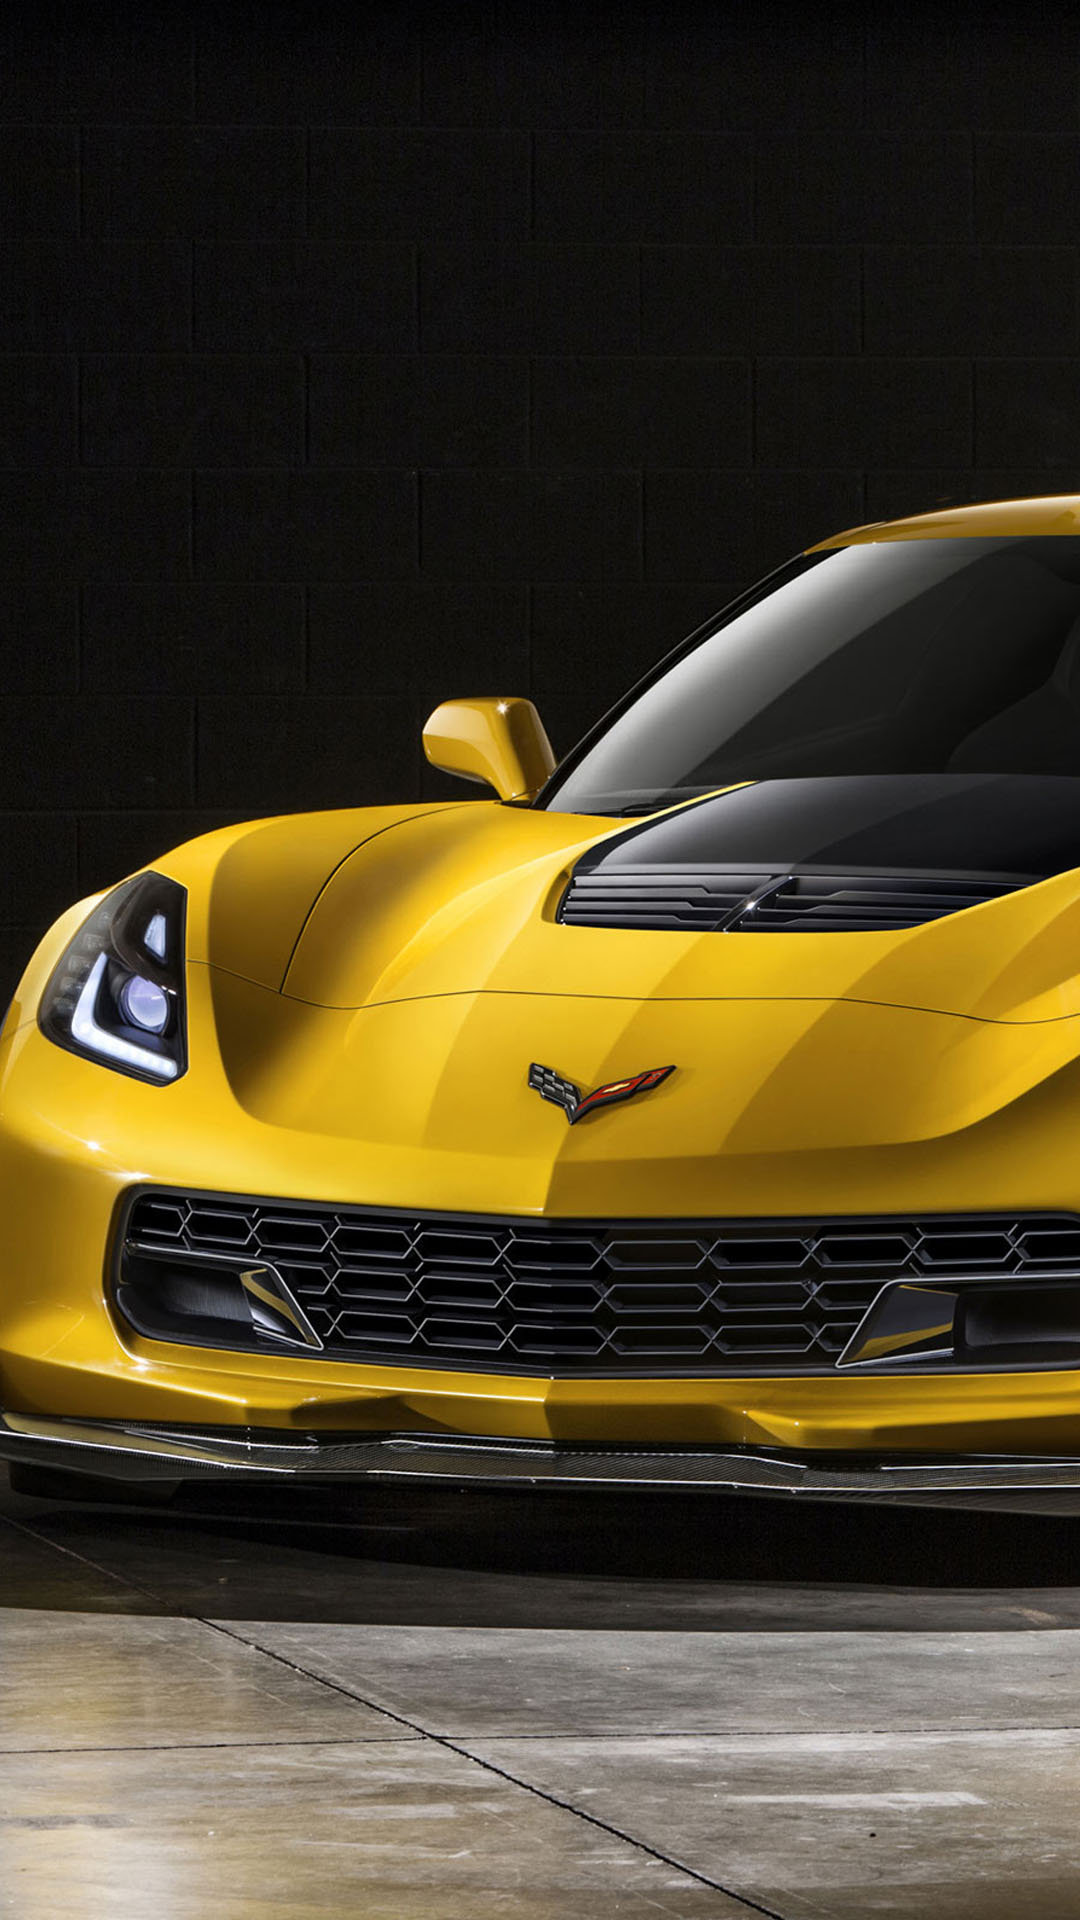 Htc One M8 Wallpaper Hd Chevrolet Corvette Z06 Yellow Best Htc One Wallpapers